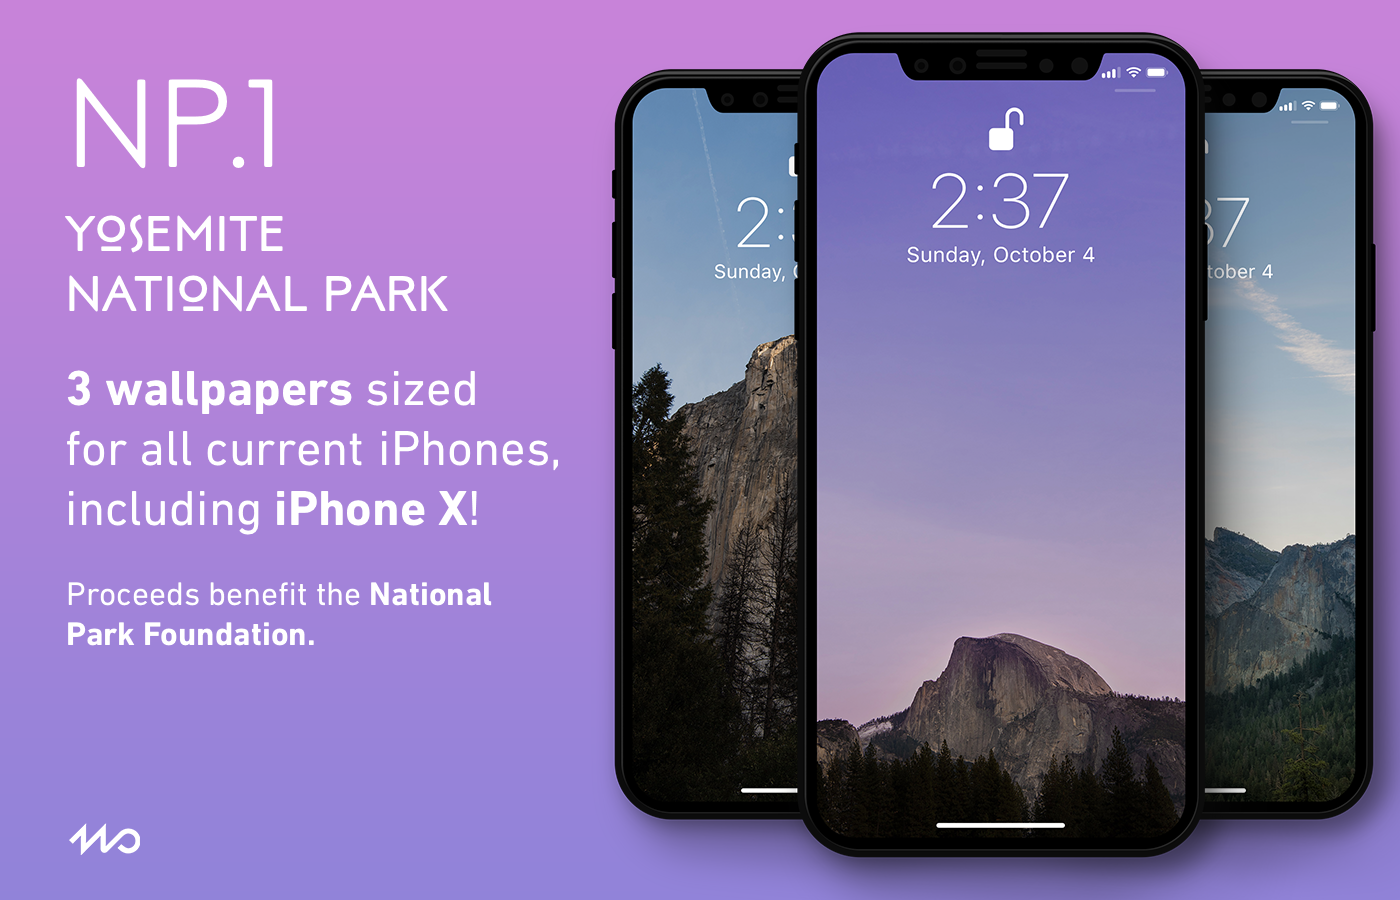 NP.1 - NP.1 includes iPhone wallpapers made from photos taken in Yosemite National Park in California.All proceeds from the sale of NP.1 benefit the National Park Foundation.